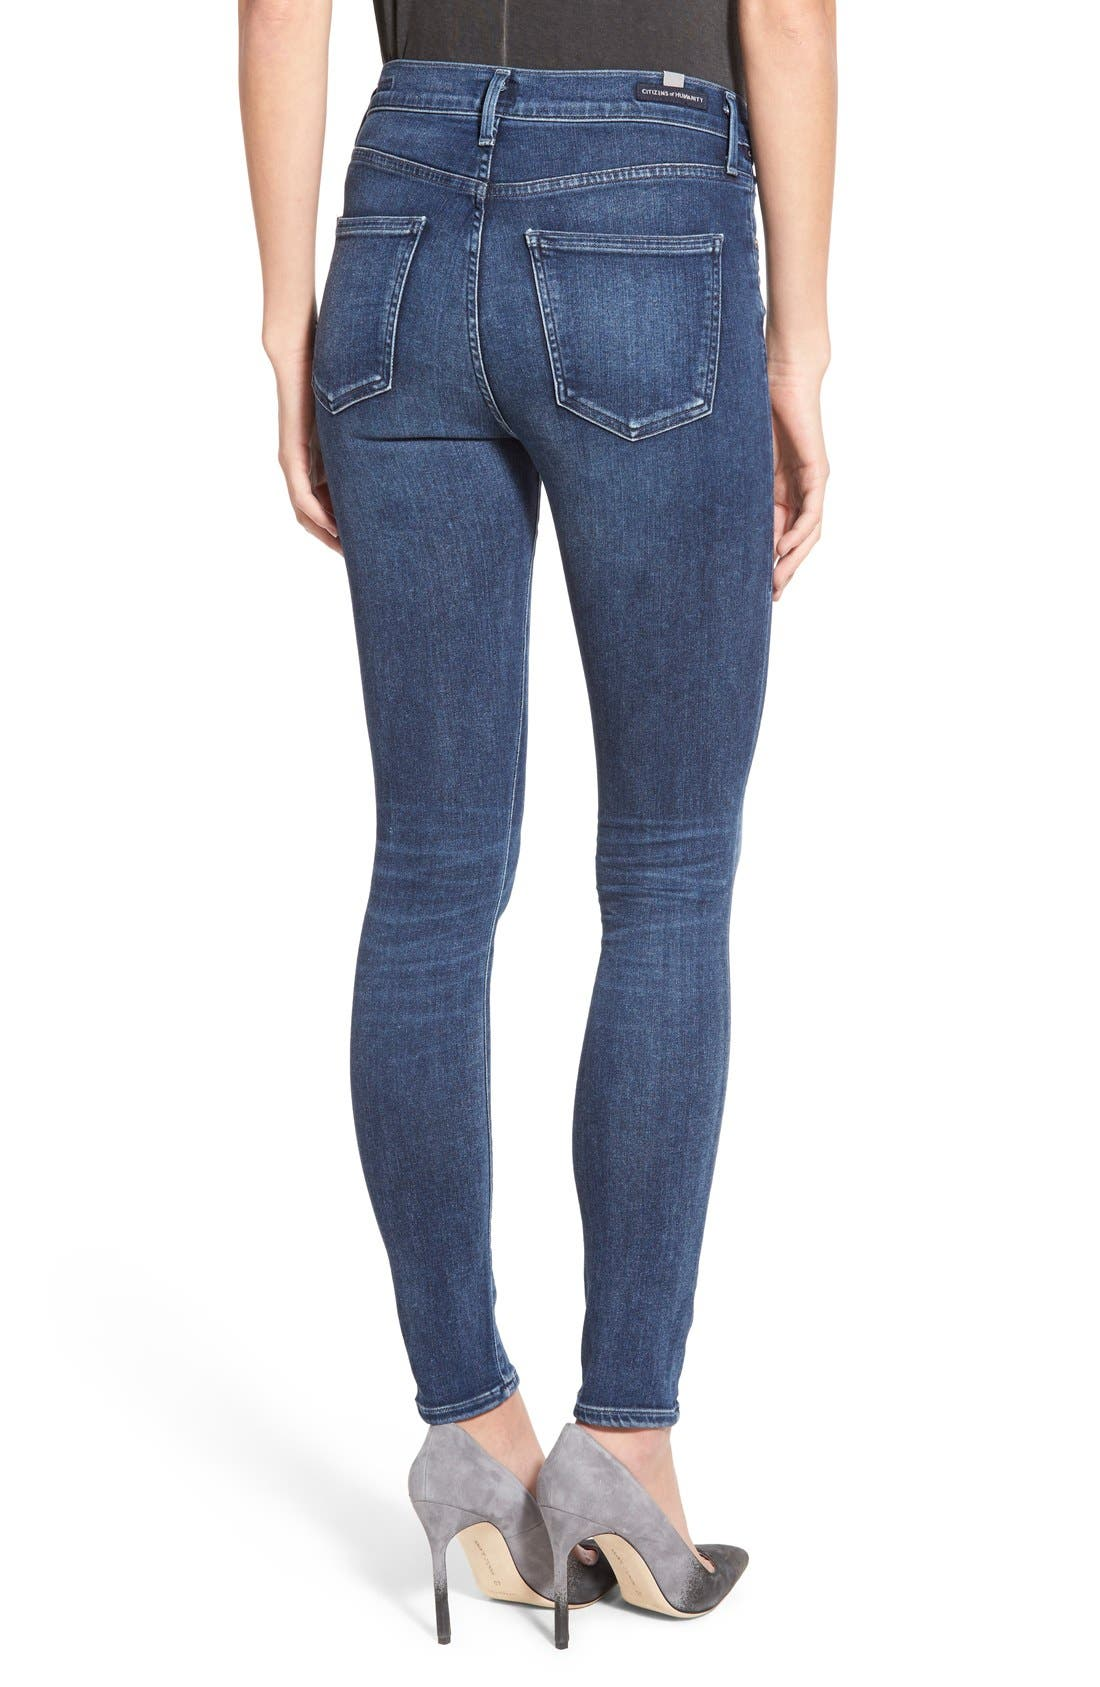 CITIZENS OF HUMANITY, Sculpt - Rocket High Waist Skinny Jeans, Alternate thumbnail 4, color, WAVERLY